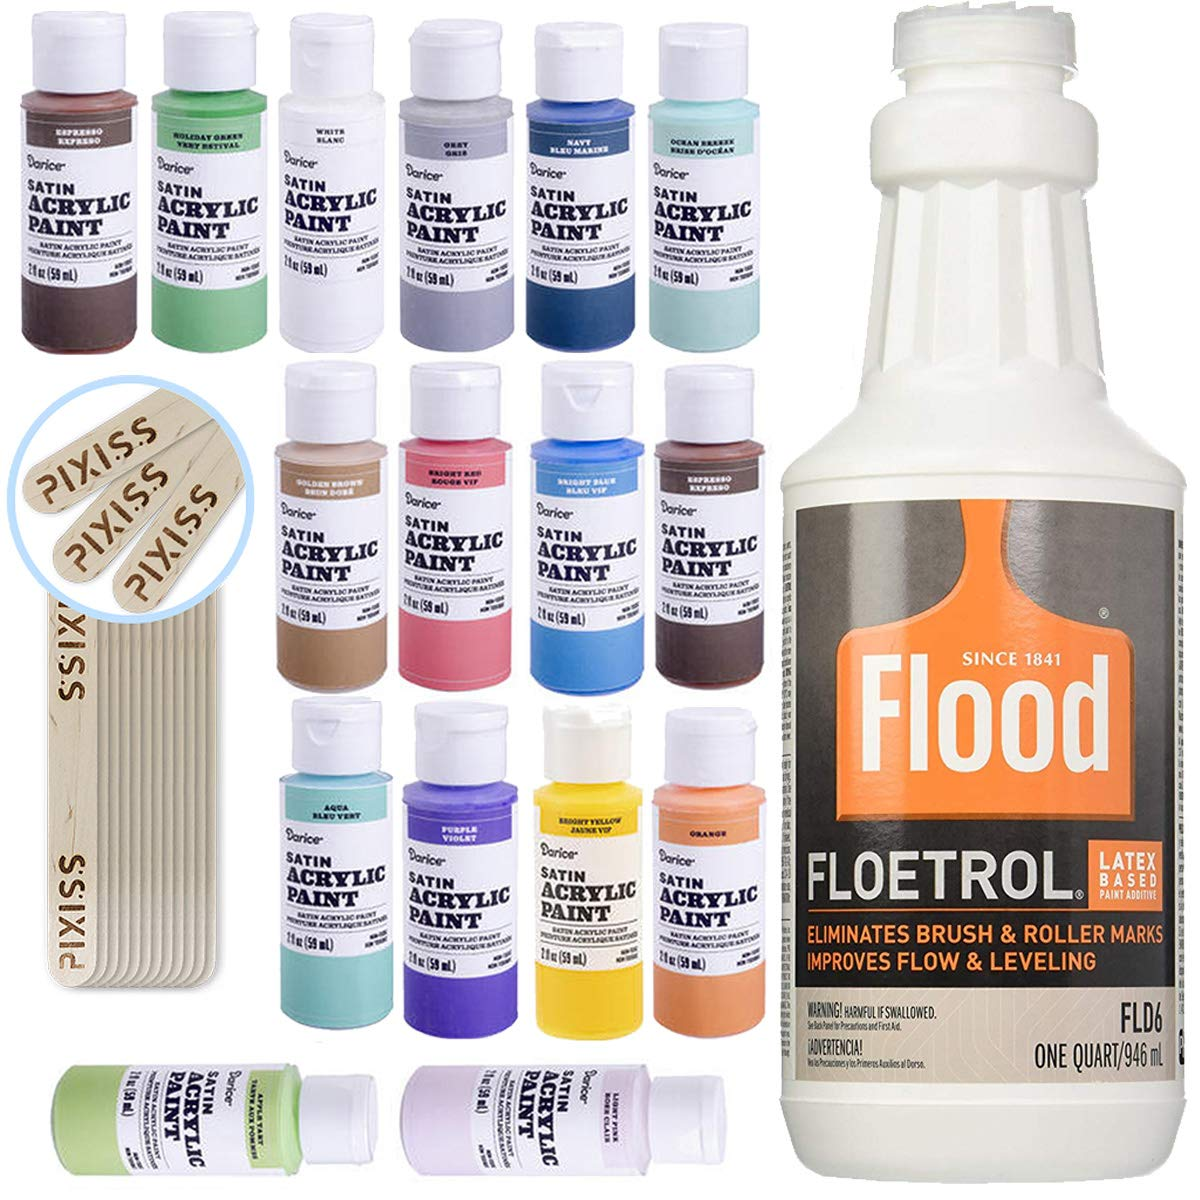 1 Quart Flood Floetrol Additive, 16 2-Ounce Acrylic Paints, 20x 6-inch Pixiss Wood Mixing Sticks by GrandProducts